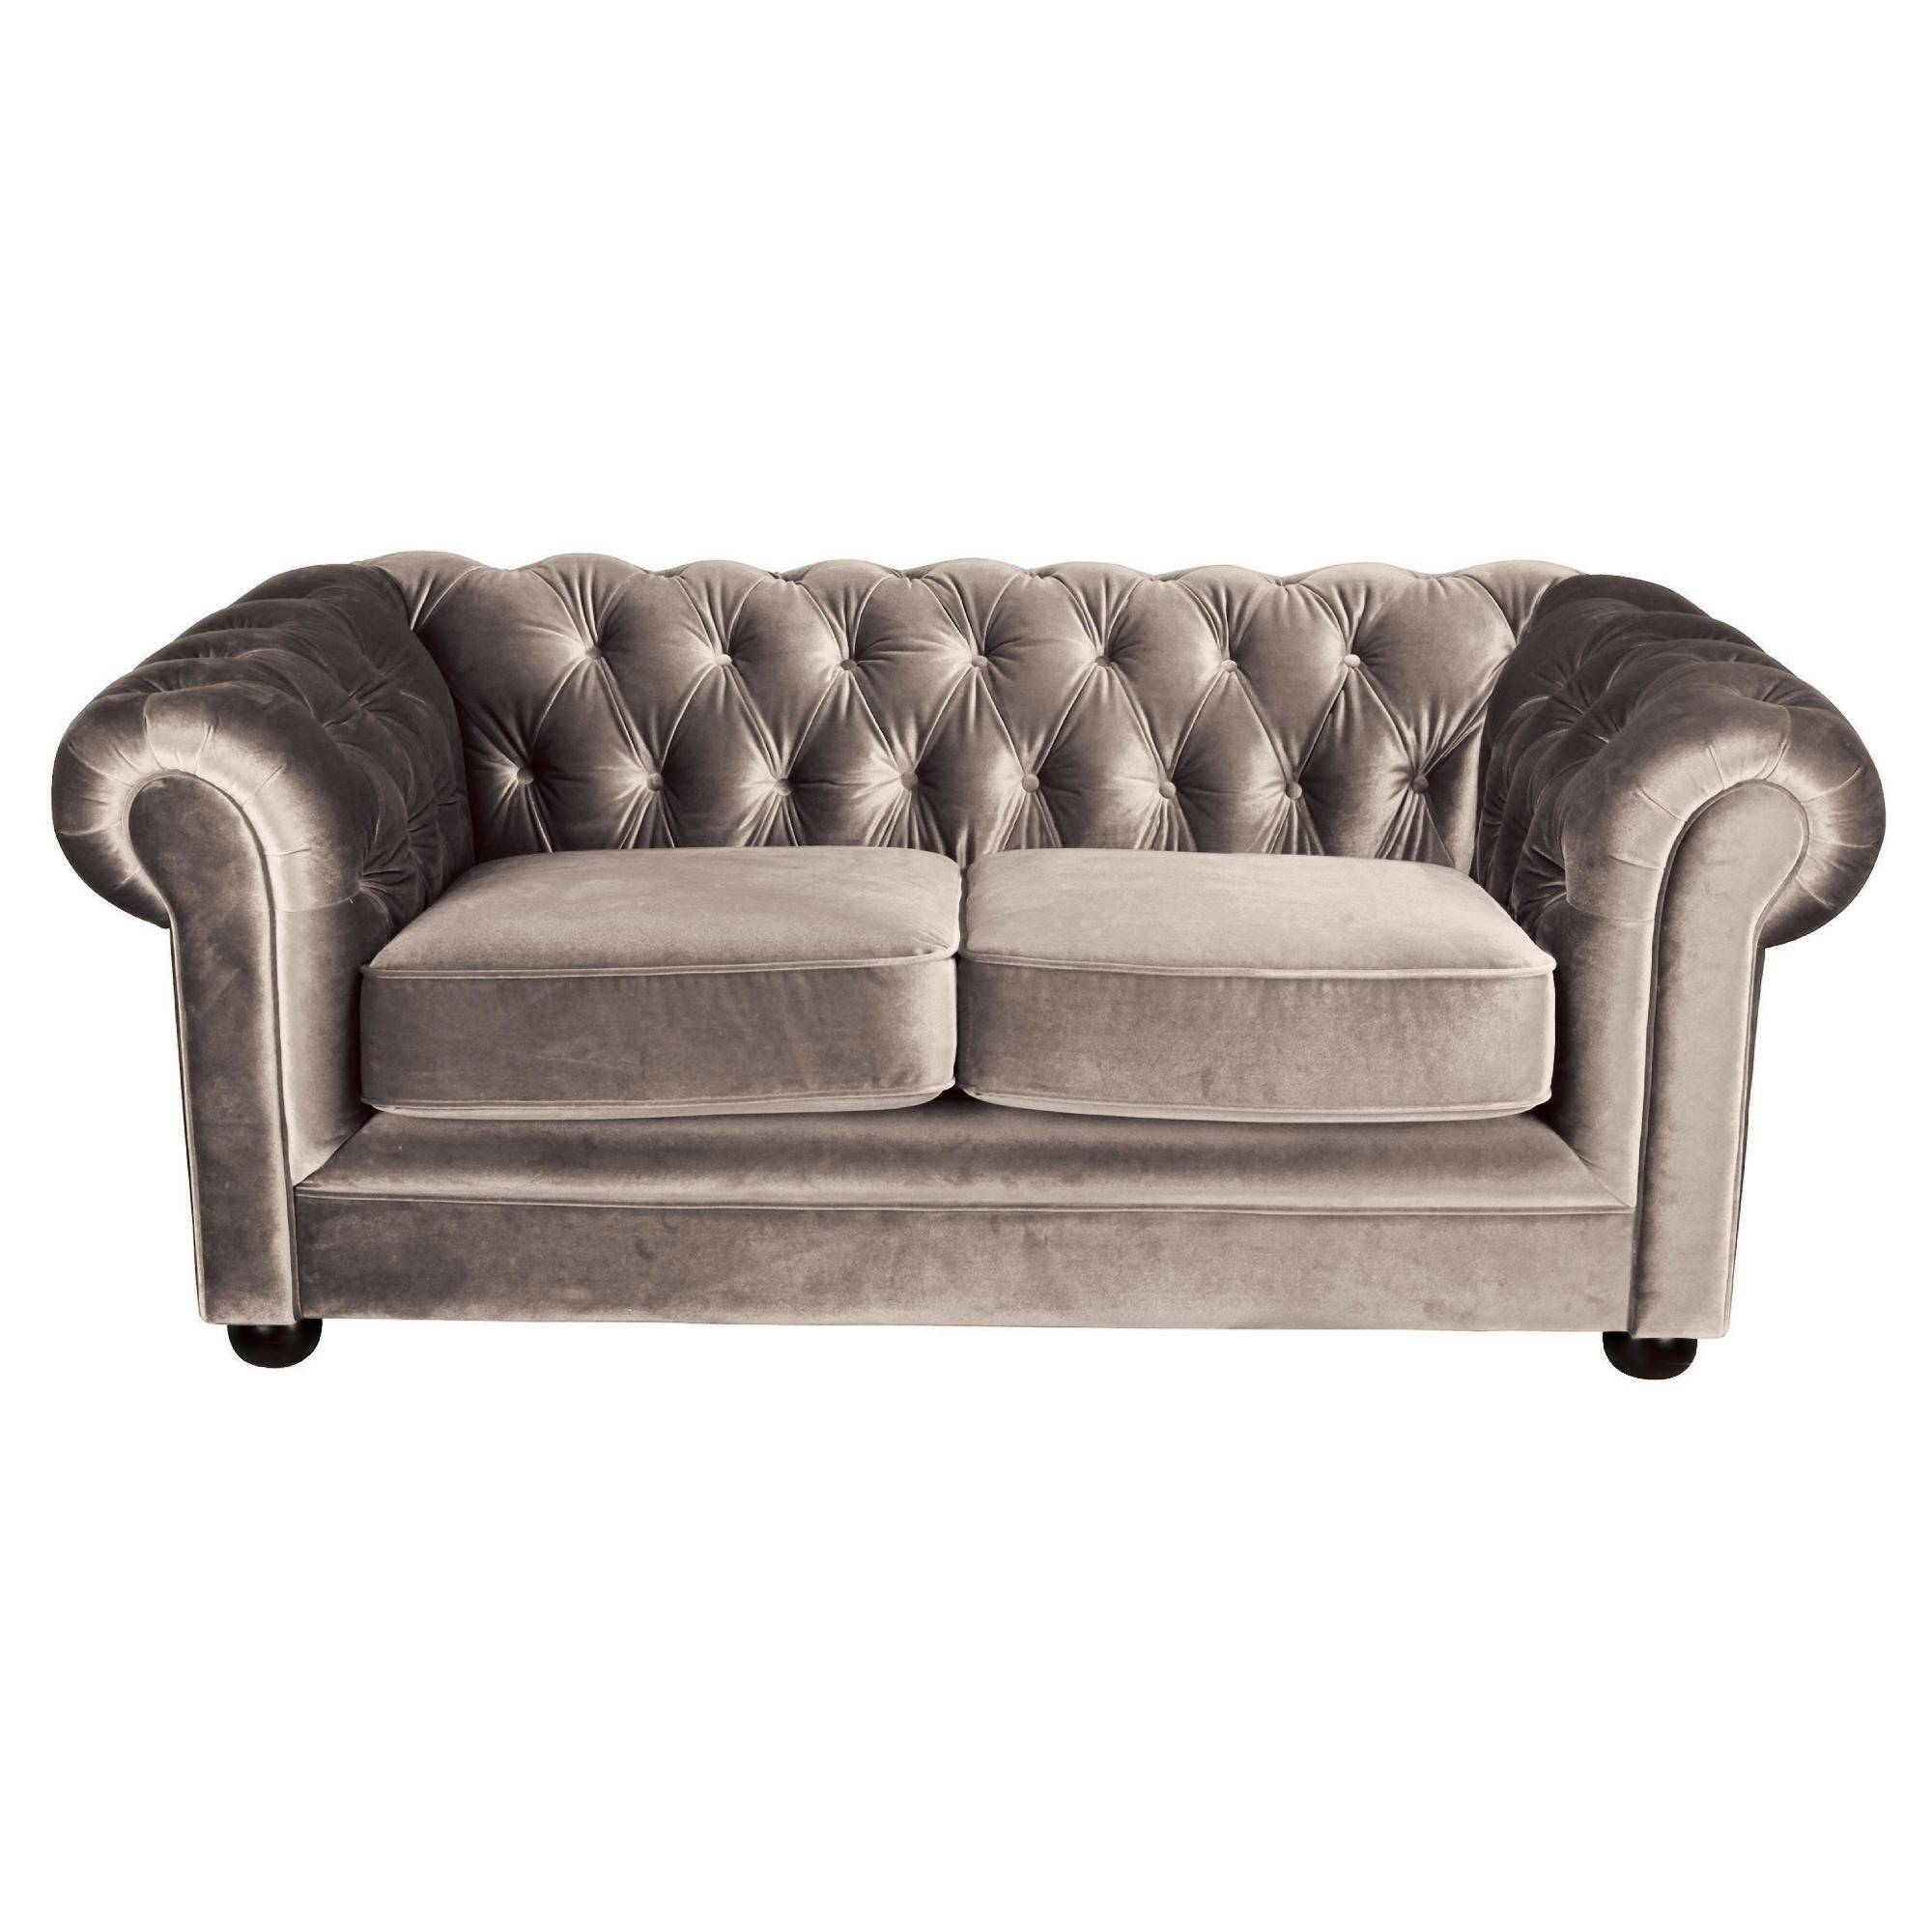 Storage Small Leather Chesterfield Sofa Thesofa Best Style Small for Small Chesterfield Sofas (Image 26 of 30)